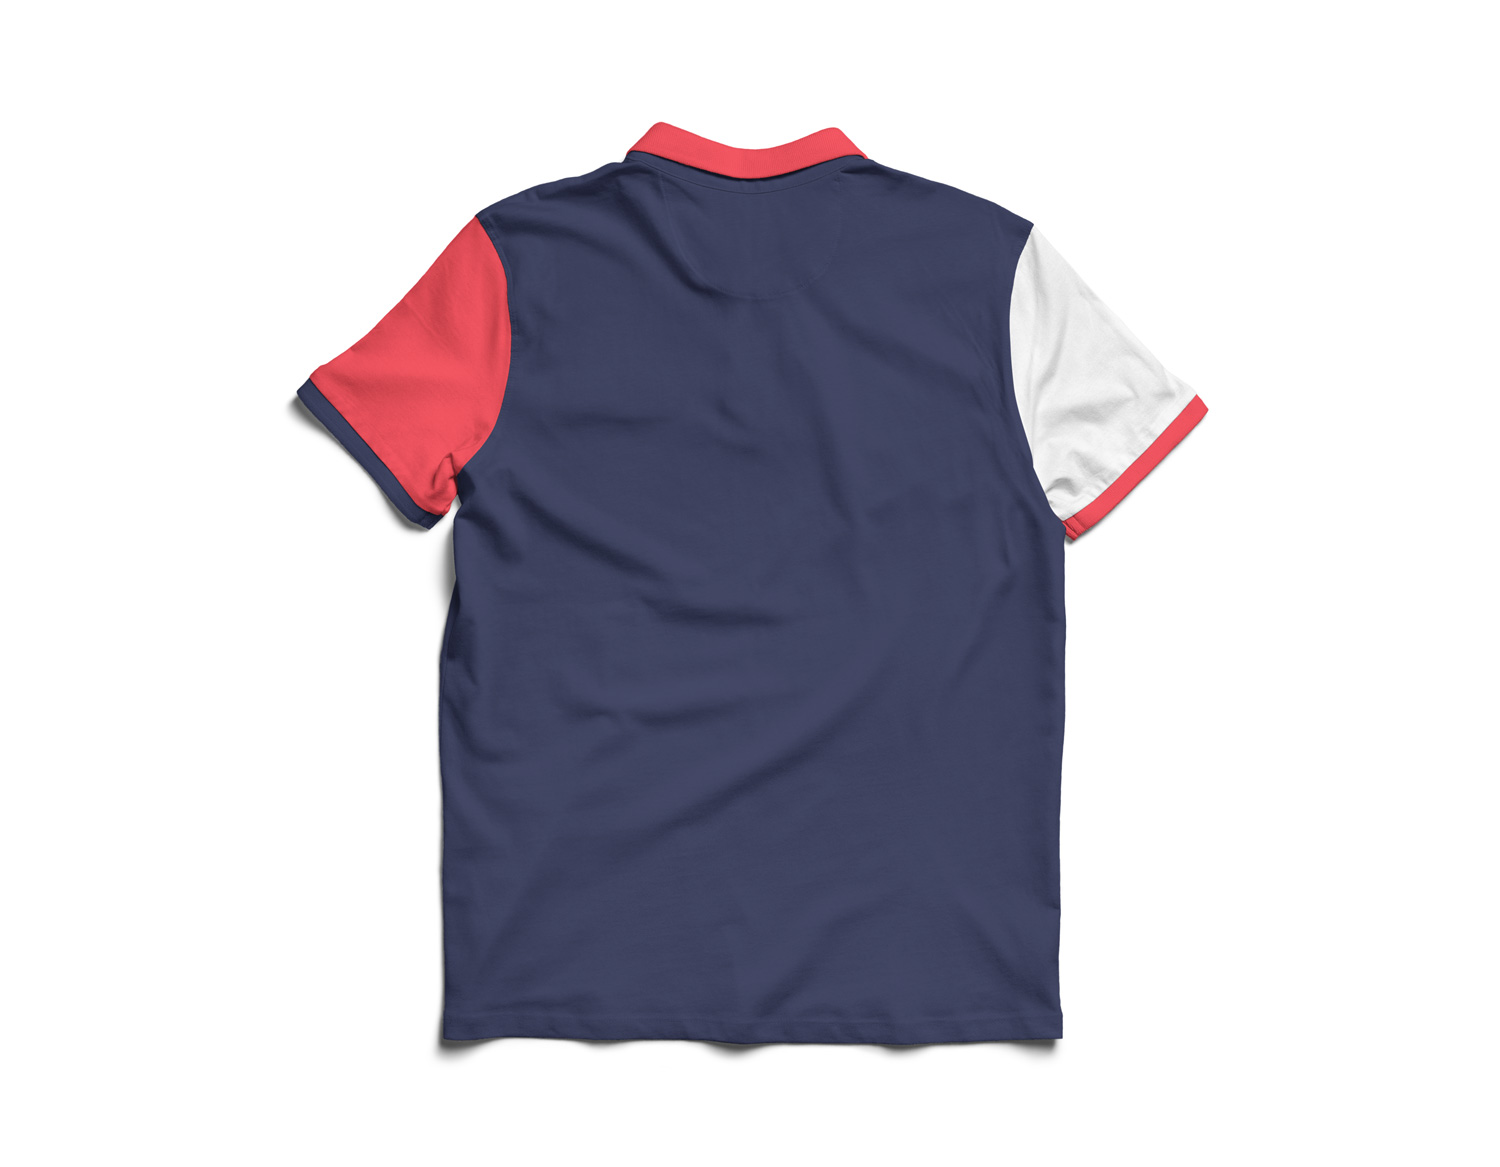 polo t shirt mockup template free download - Free T Shirt Mockup Template